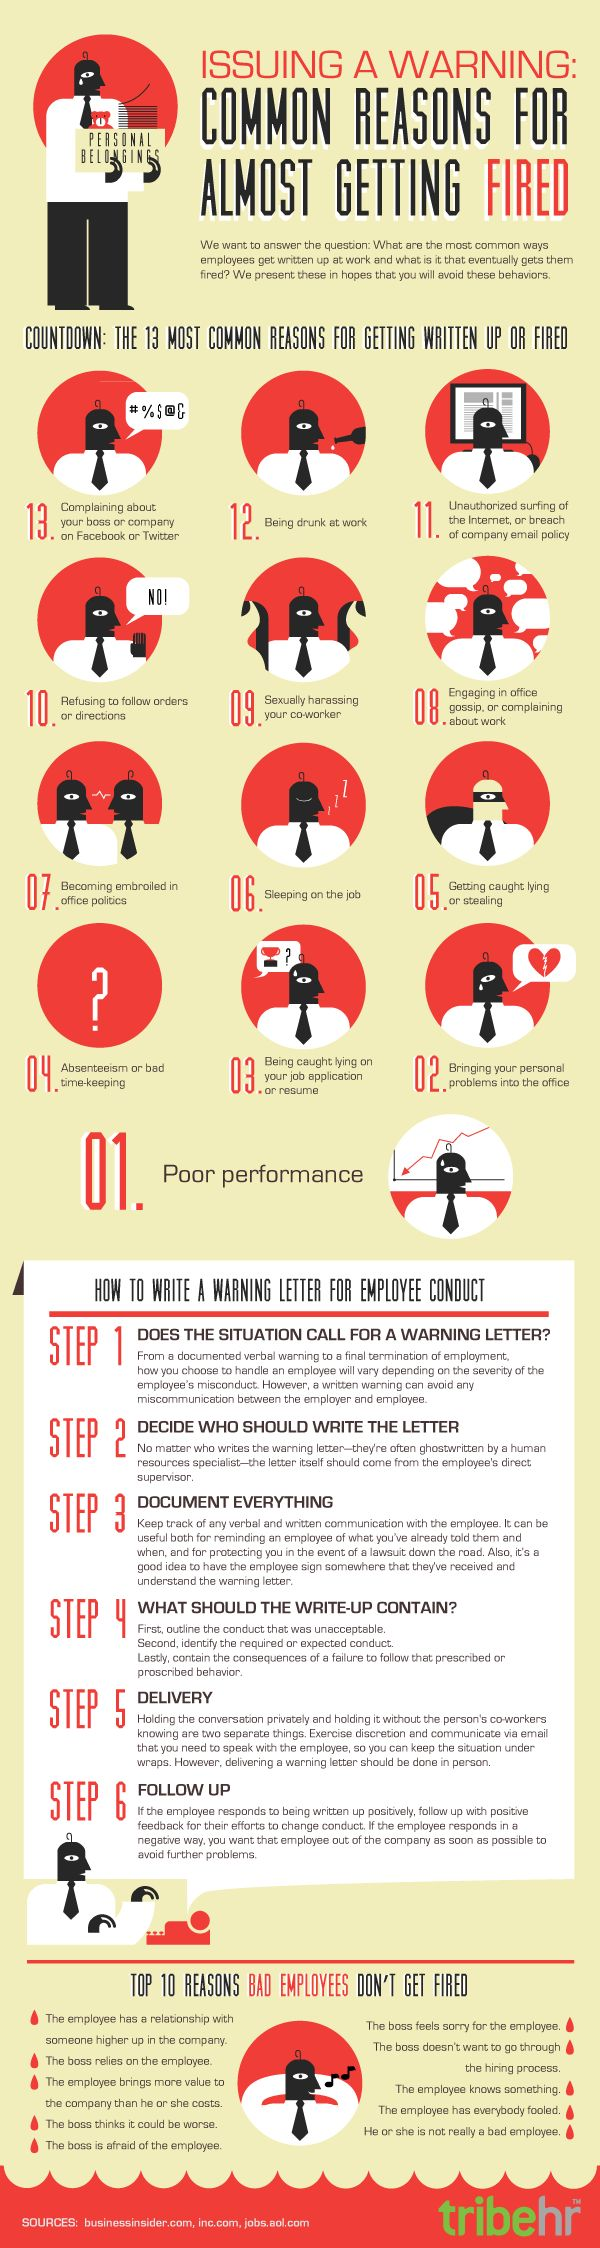 Common Reasons for Almost Getting Fired #Infographic #infografía